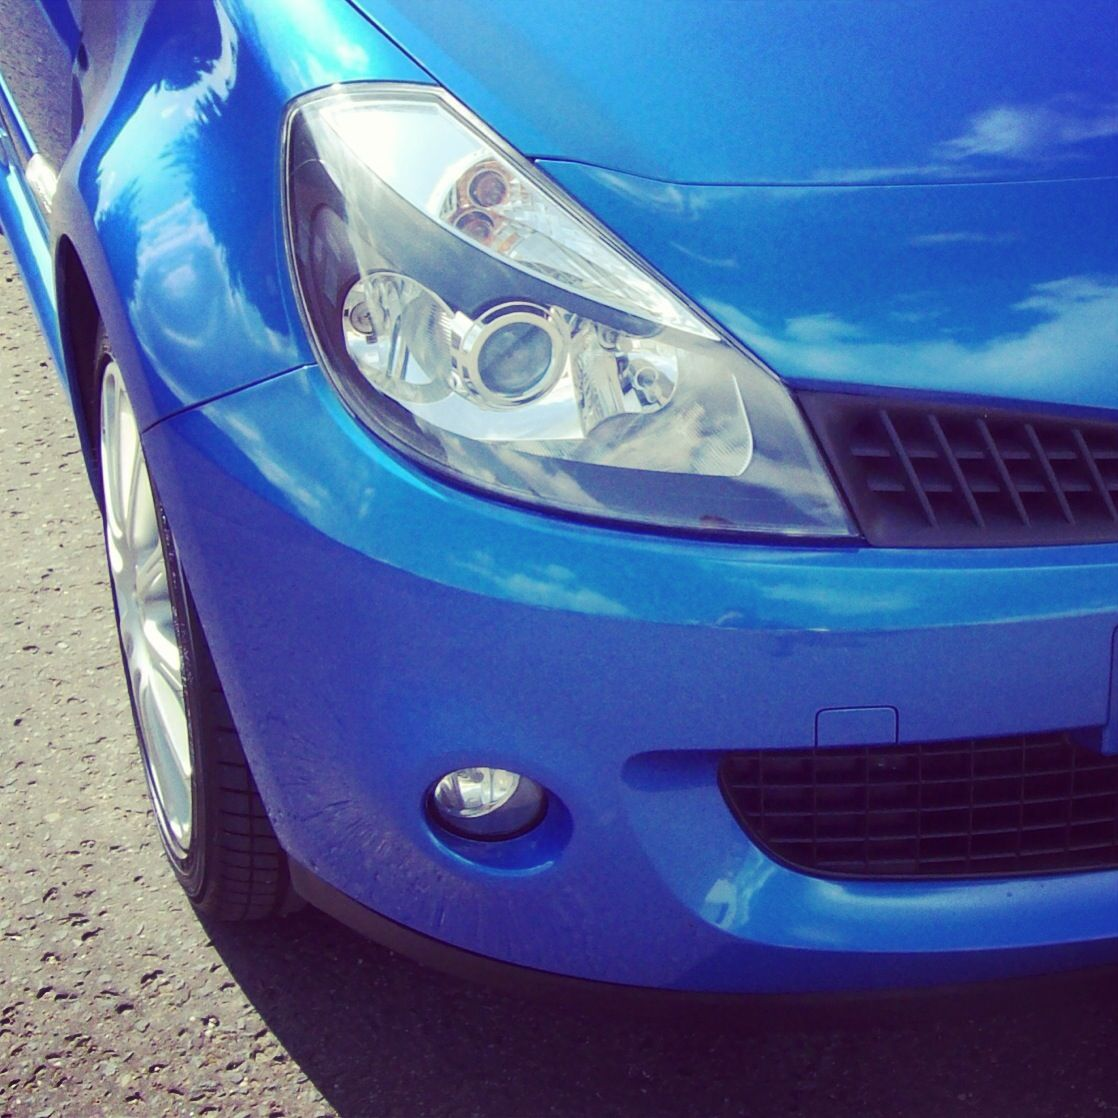 Renault Clio 197: The Chunky Front End Of A Renault Clio 197 Wearing Zymol Wax